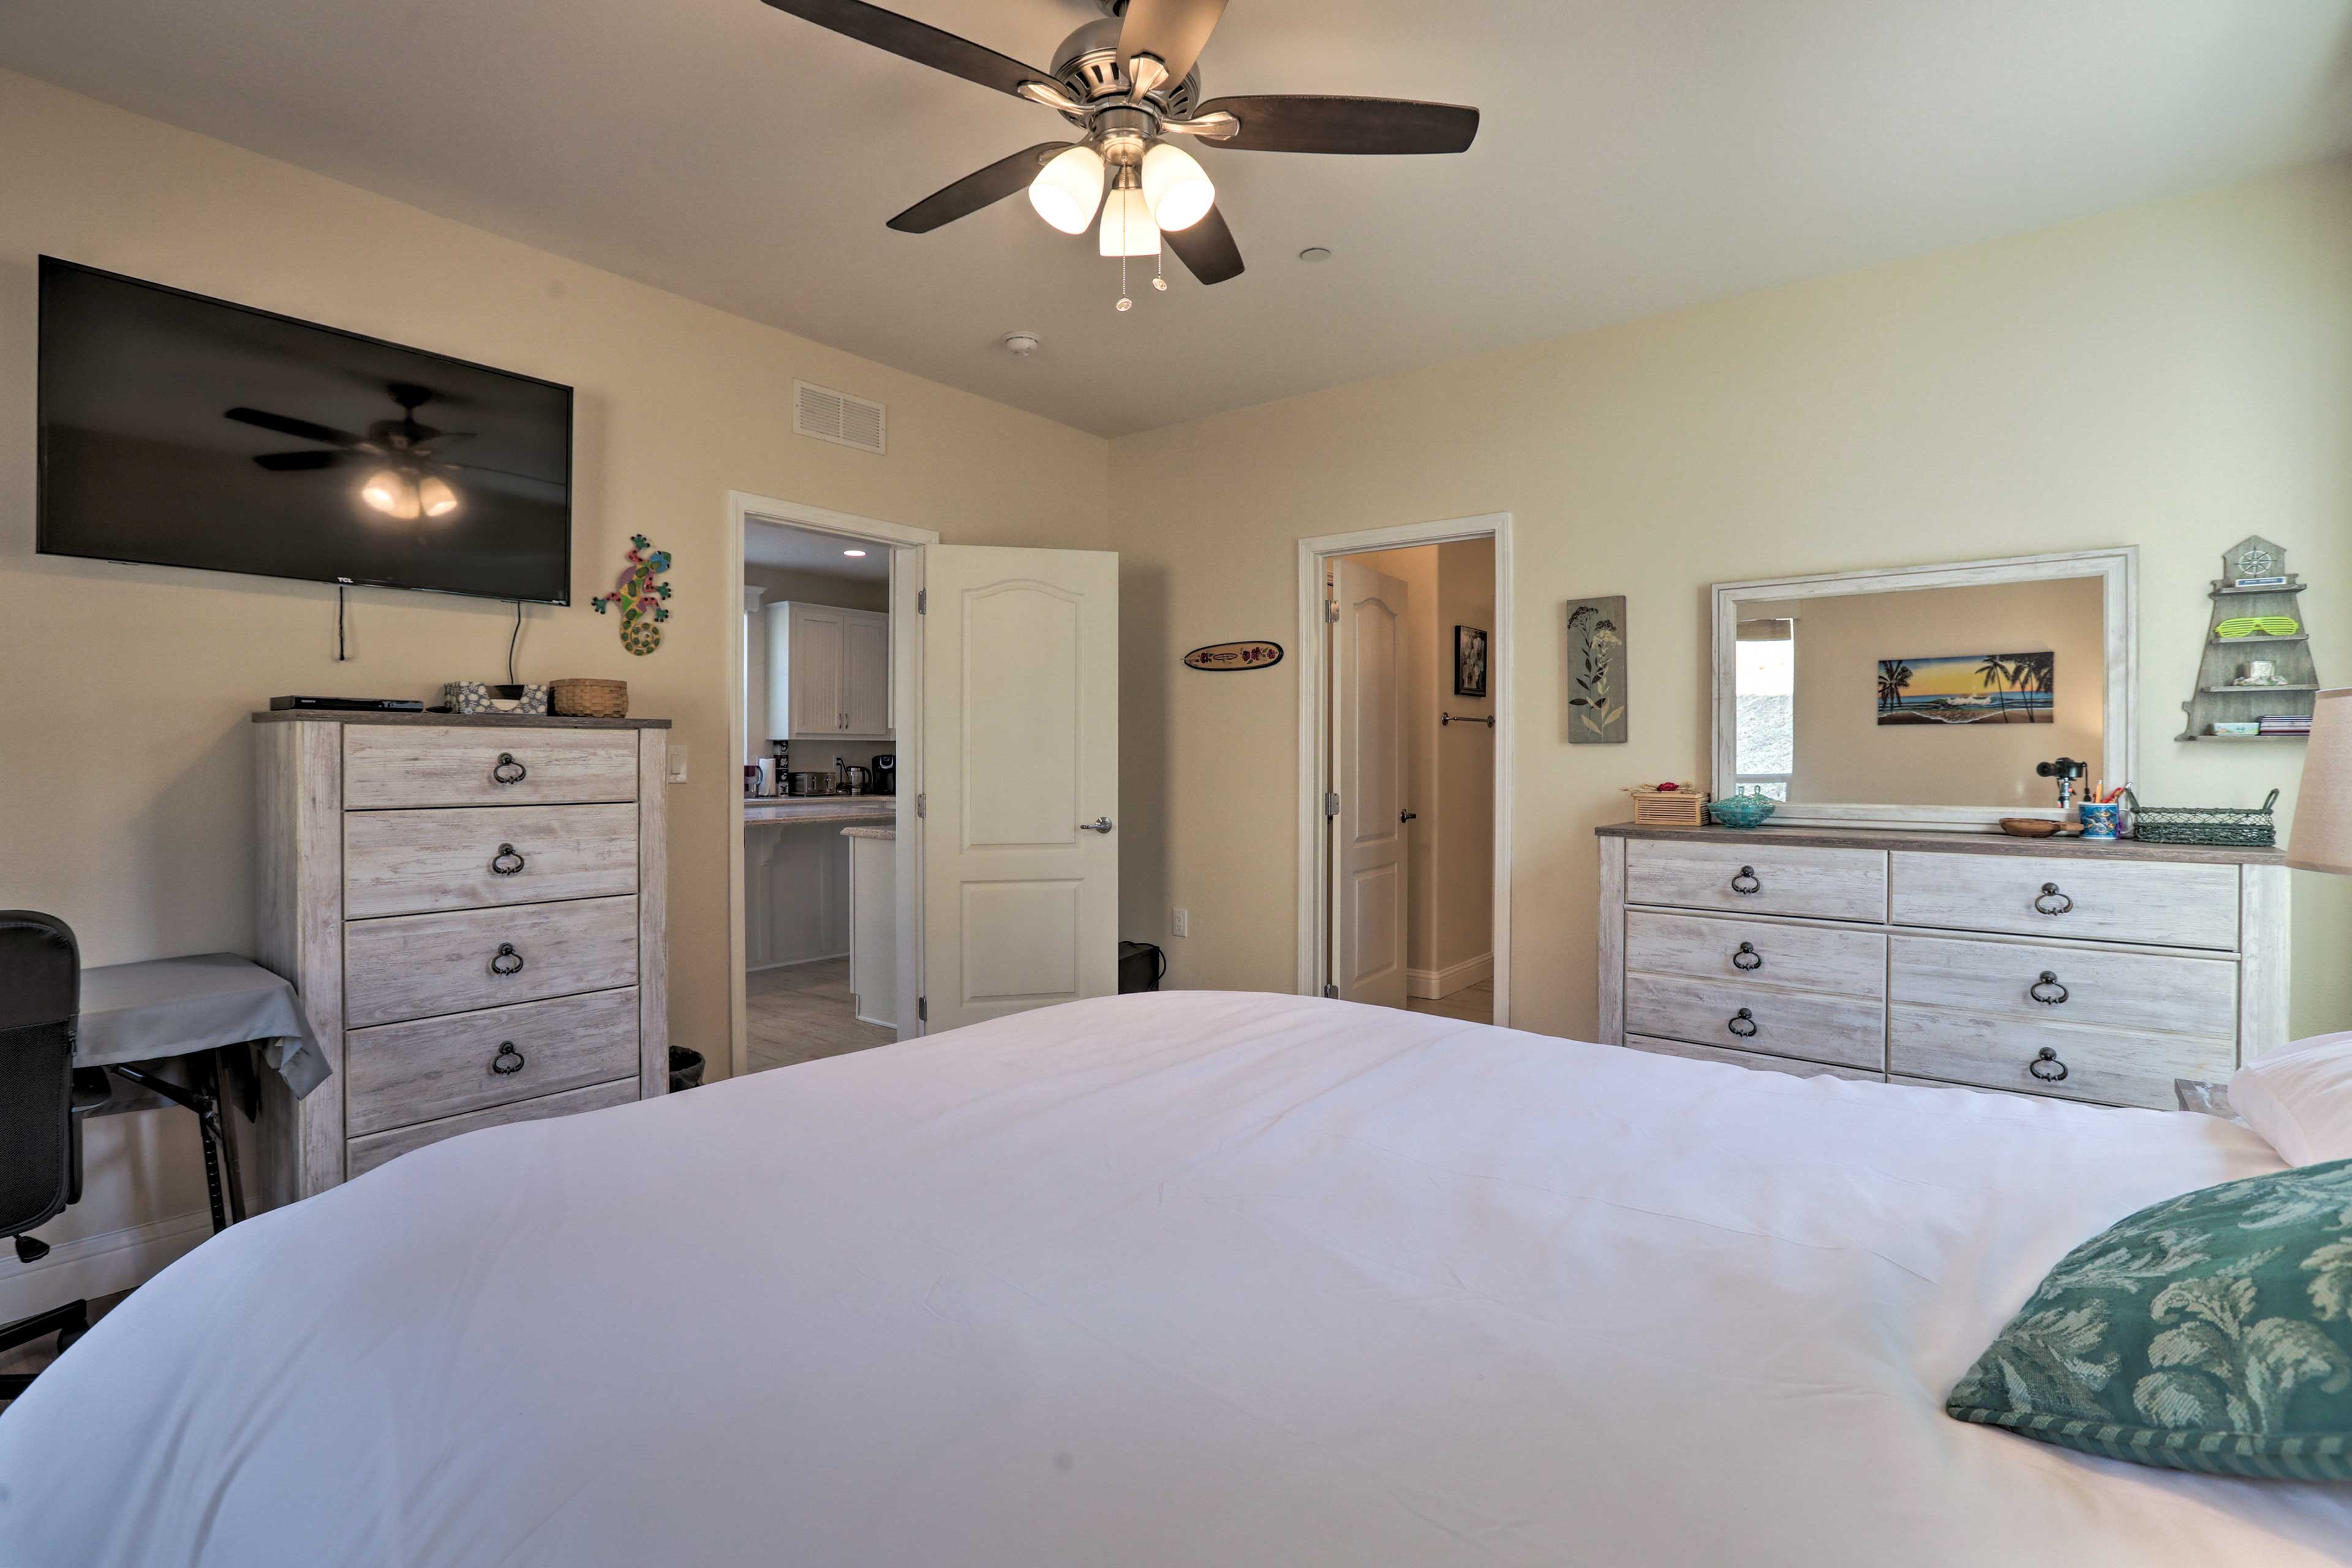 This master bedroom offers a king bed, flat-screen TV, and en-suite bath.